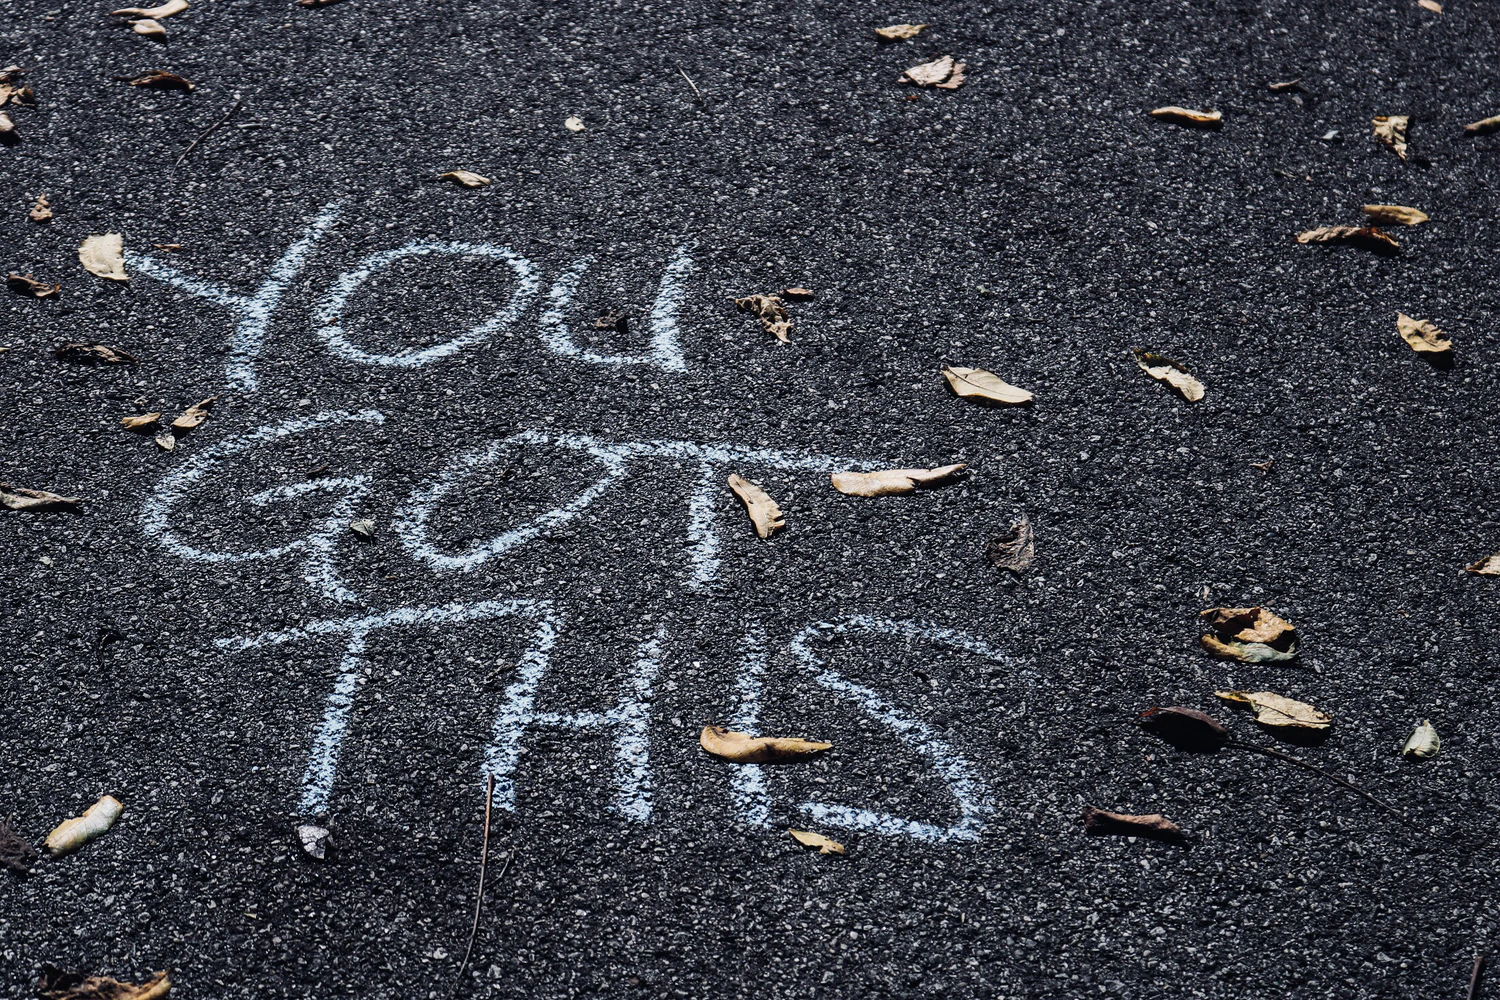 """An image of chalk writing on asphalt, fallen leaves scattered around them. The message reads """"You got this!"""" in all capital letters."""